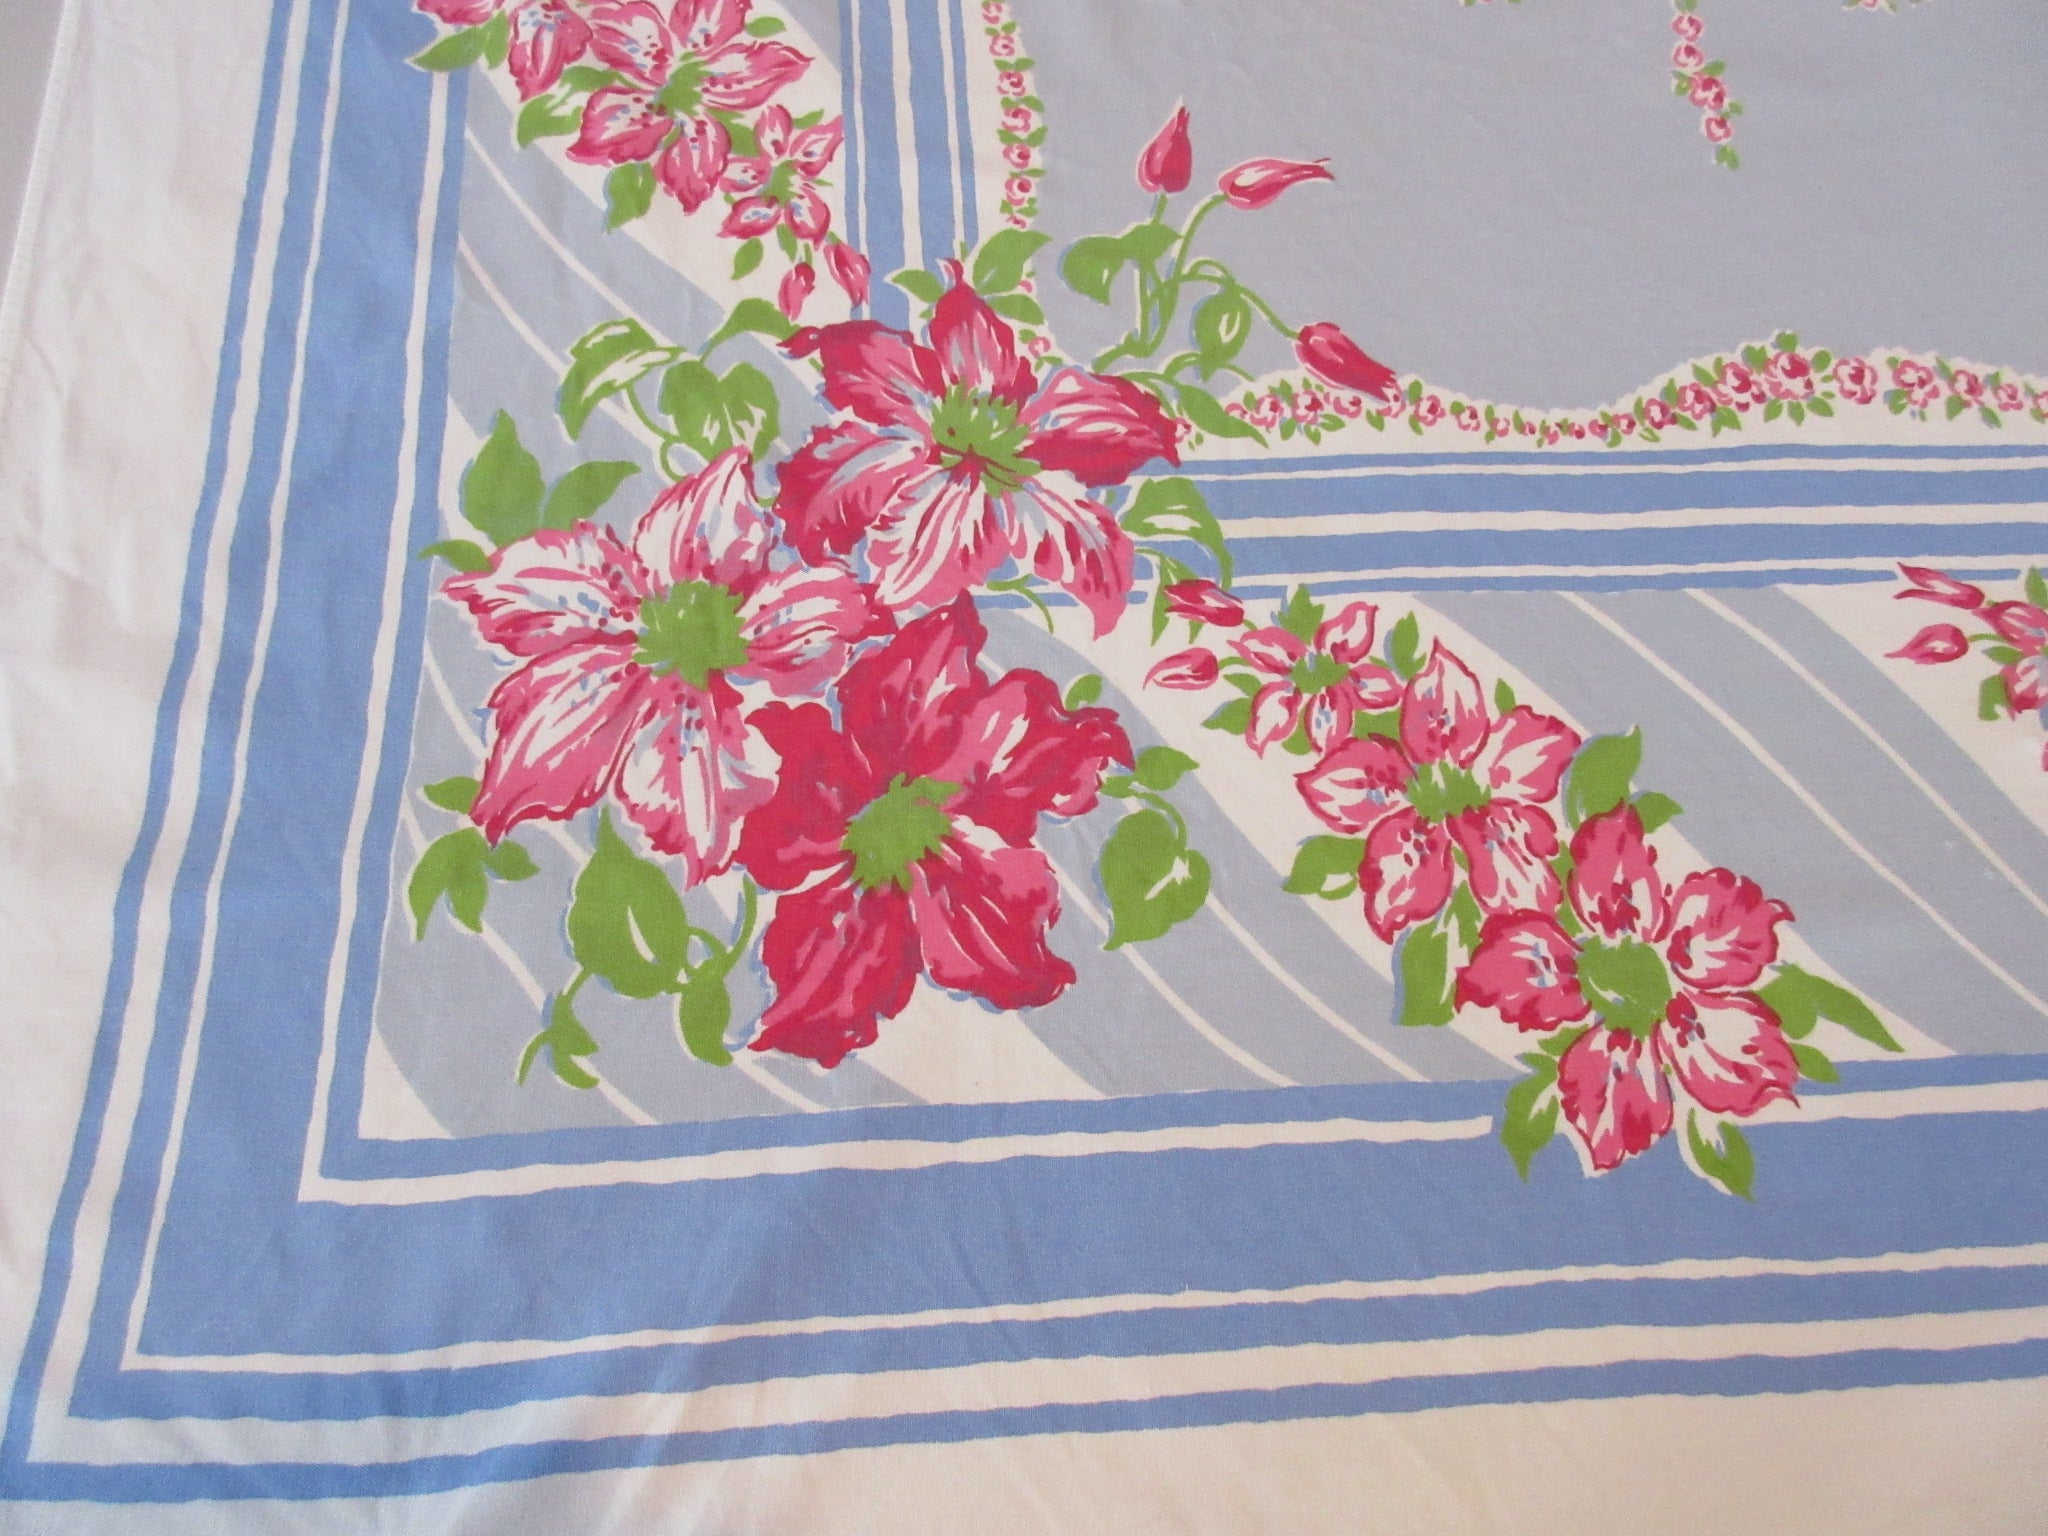 Pink Clematis on Blue Gray Floral Vintage Printed Tablecloth (60 X 51)